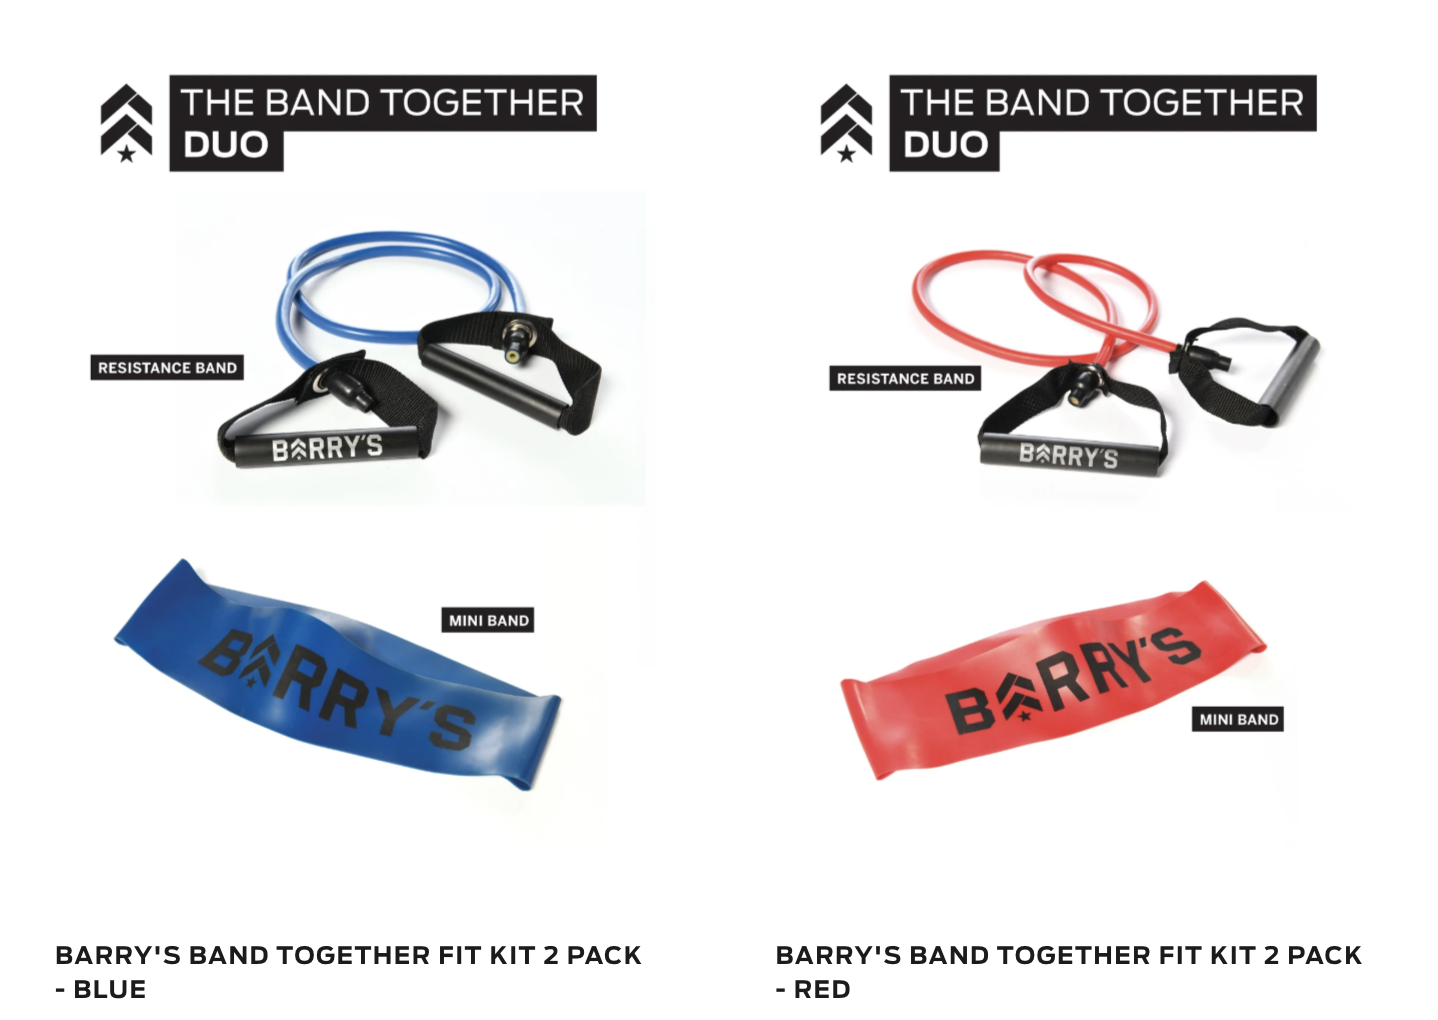 Barry's At Home band kits.